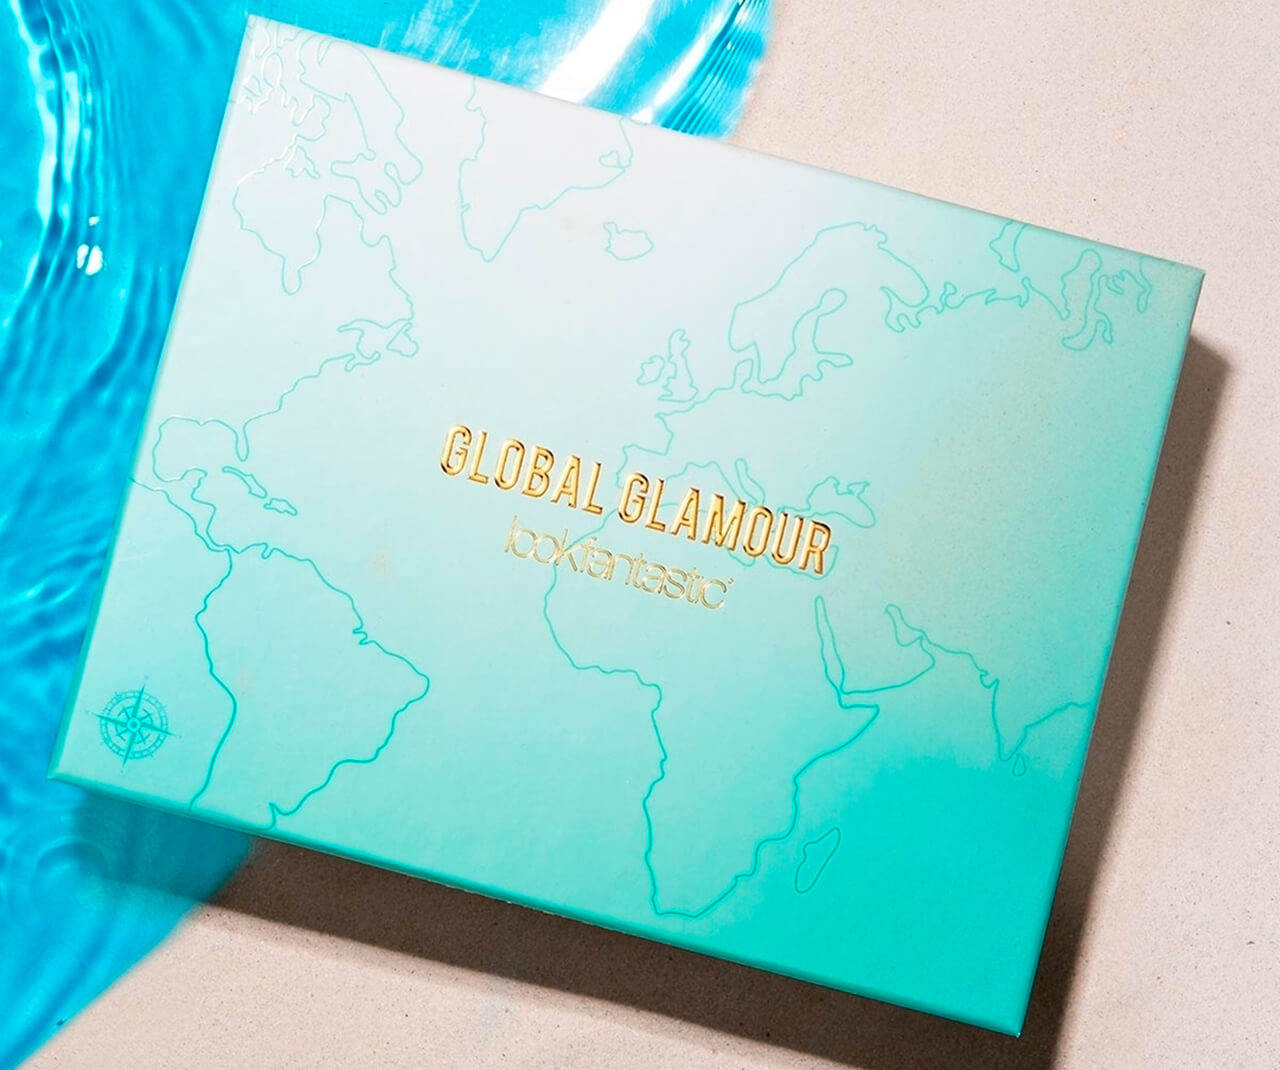 Lookfantastic Beauty Box August 2017 наполнение